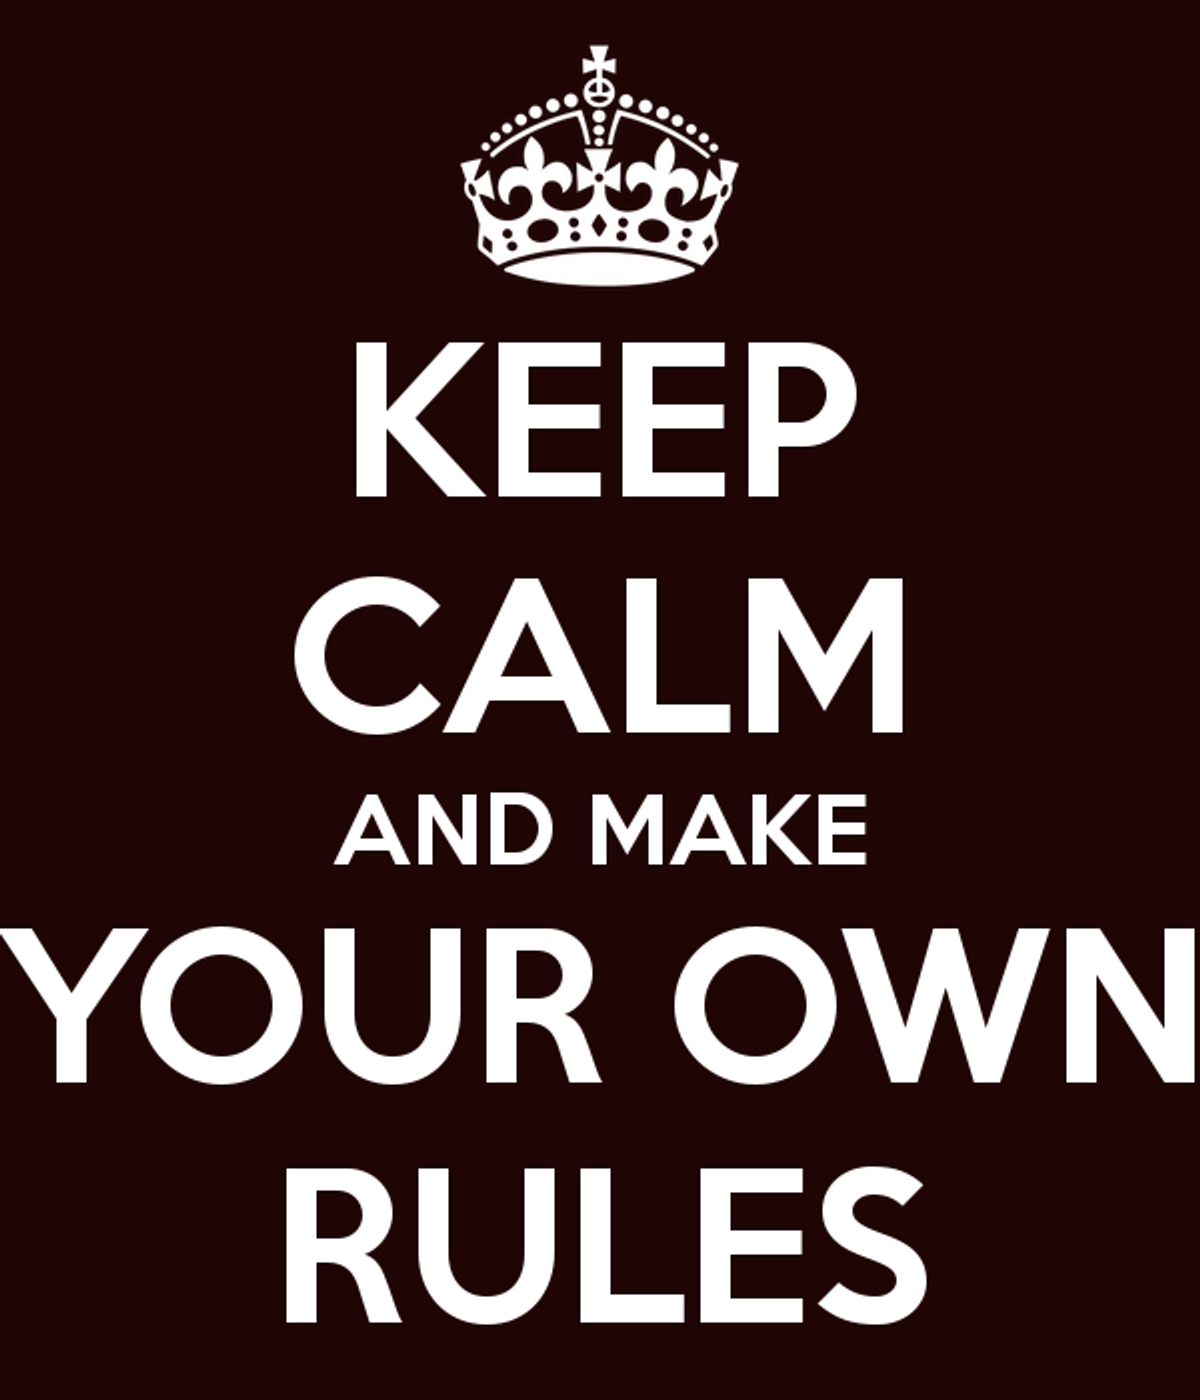 26 Rules I've Learned to Live By